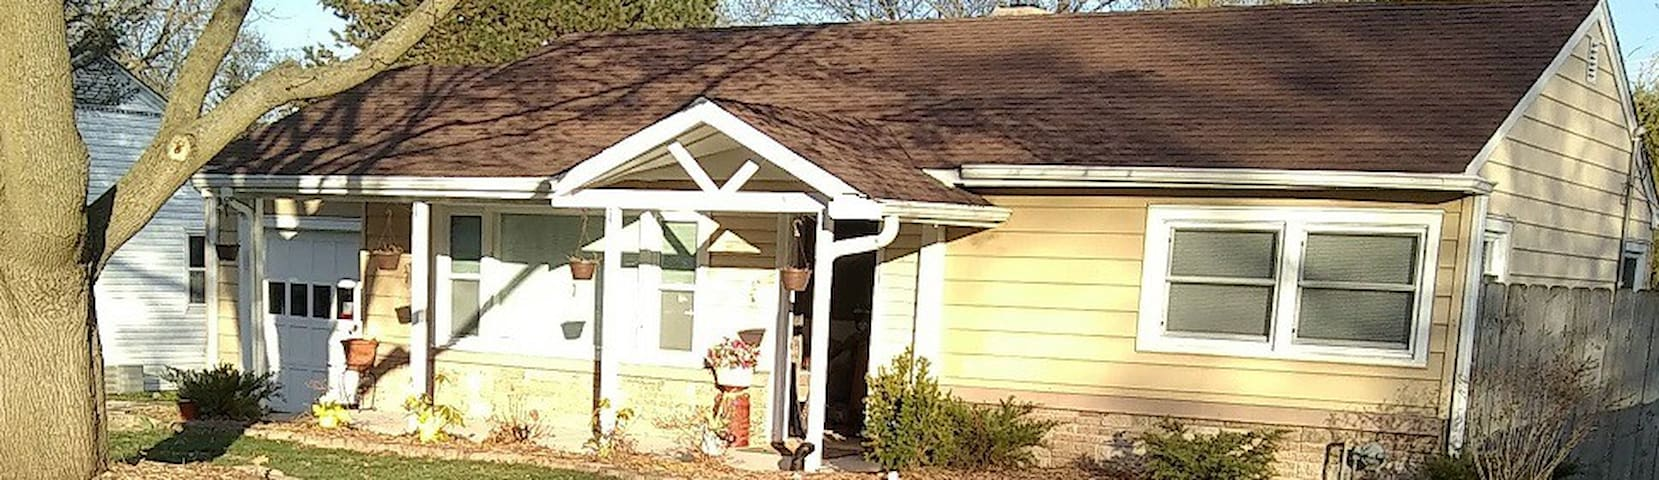 Quaint charming remodeled home by Downtown McHenry